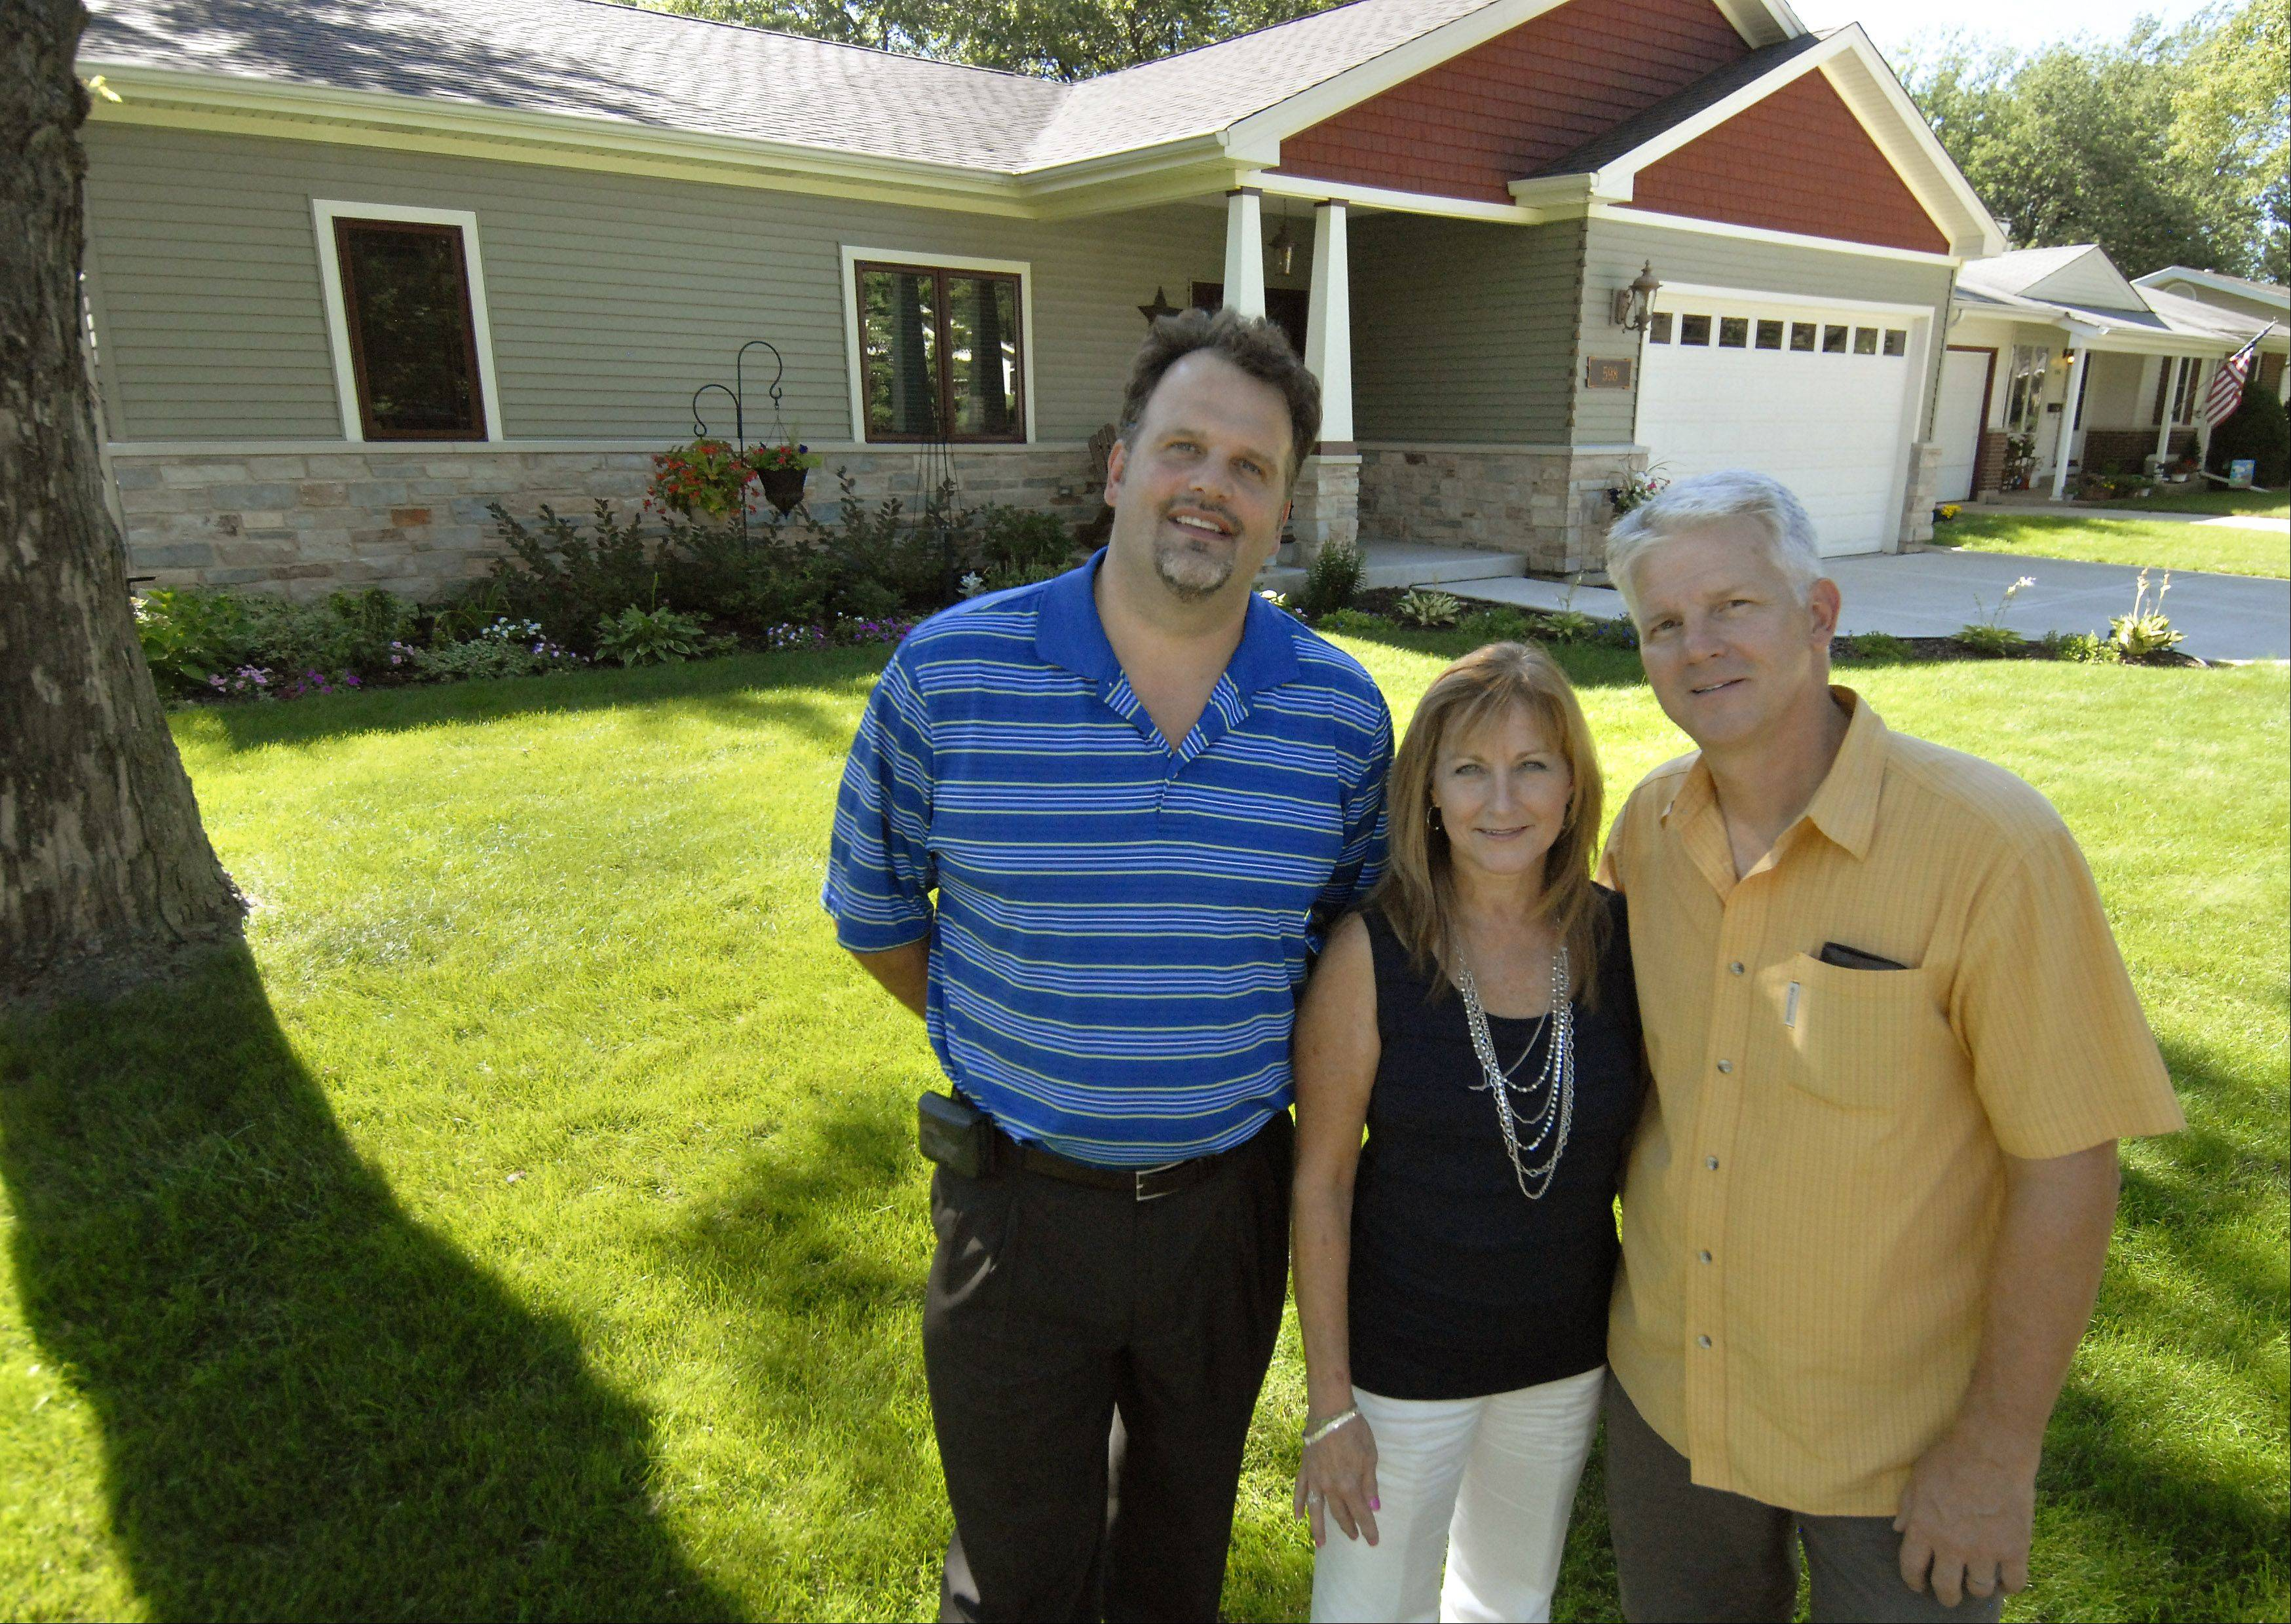 Tony Slade of DESIGNfirst, left, worked with Maureen and Jim Lenski to incorporate their wishes in the remodel of their Elk Grove Village home.